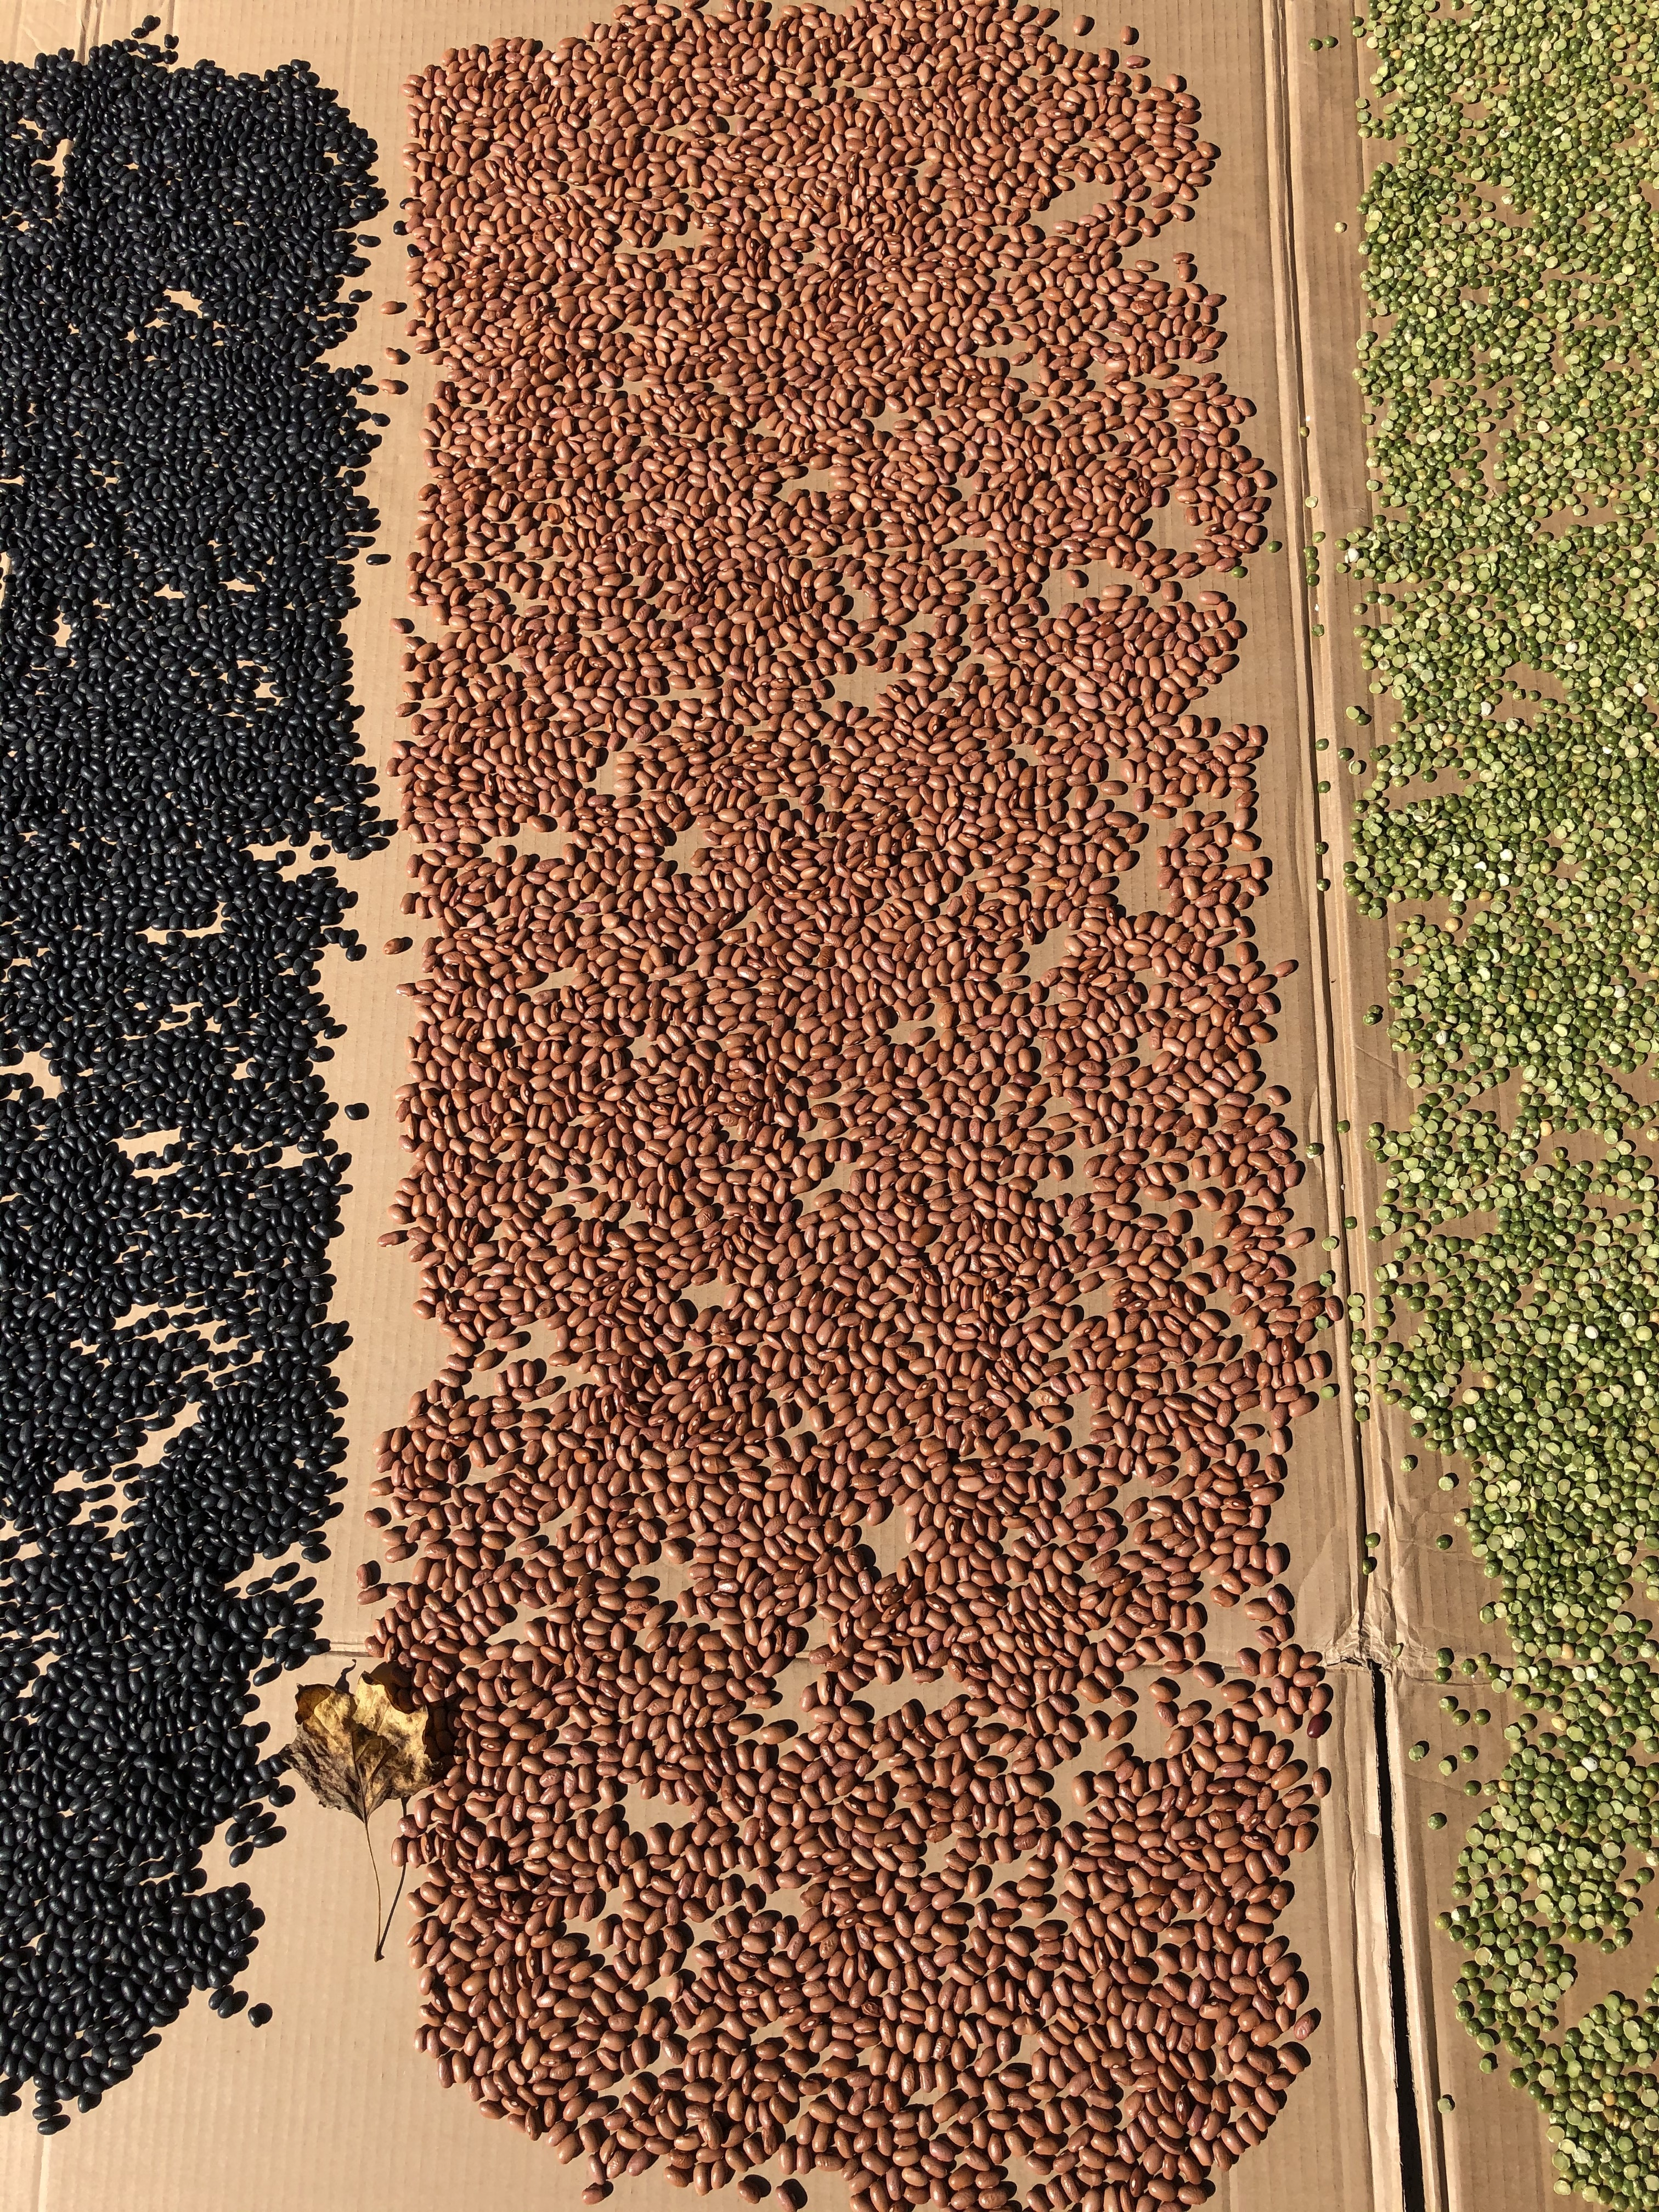 A Field of Beans